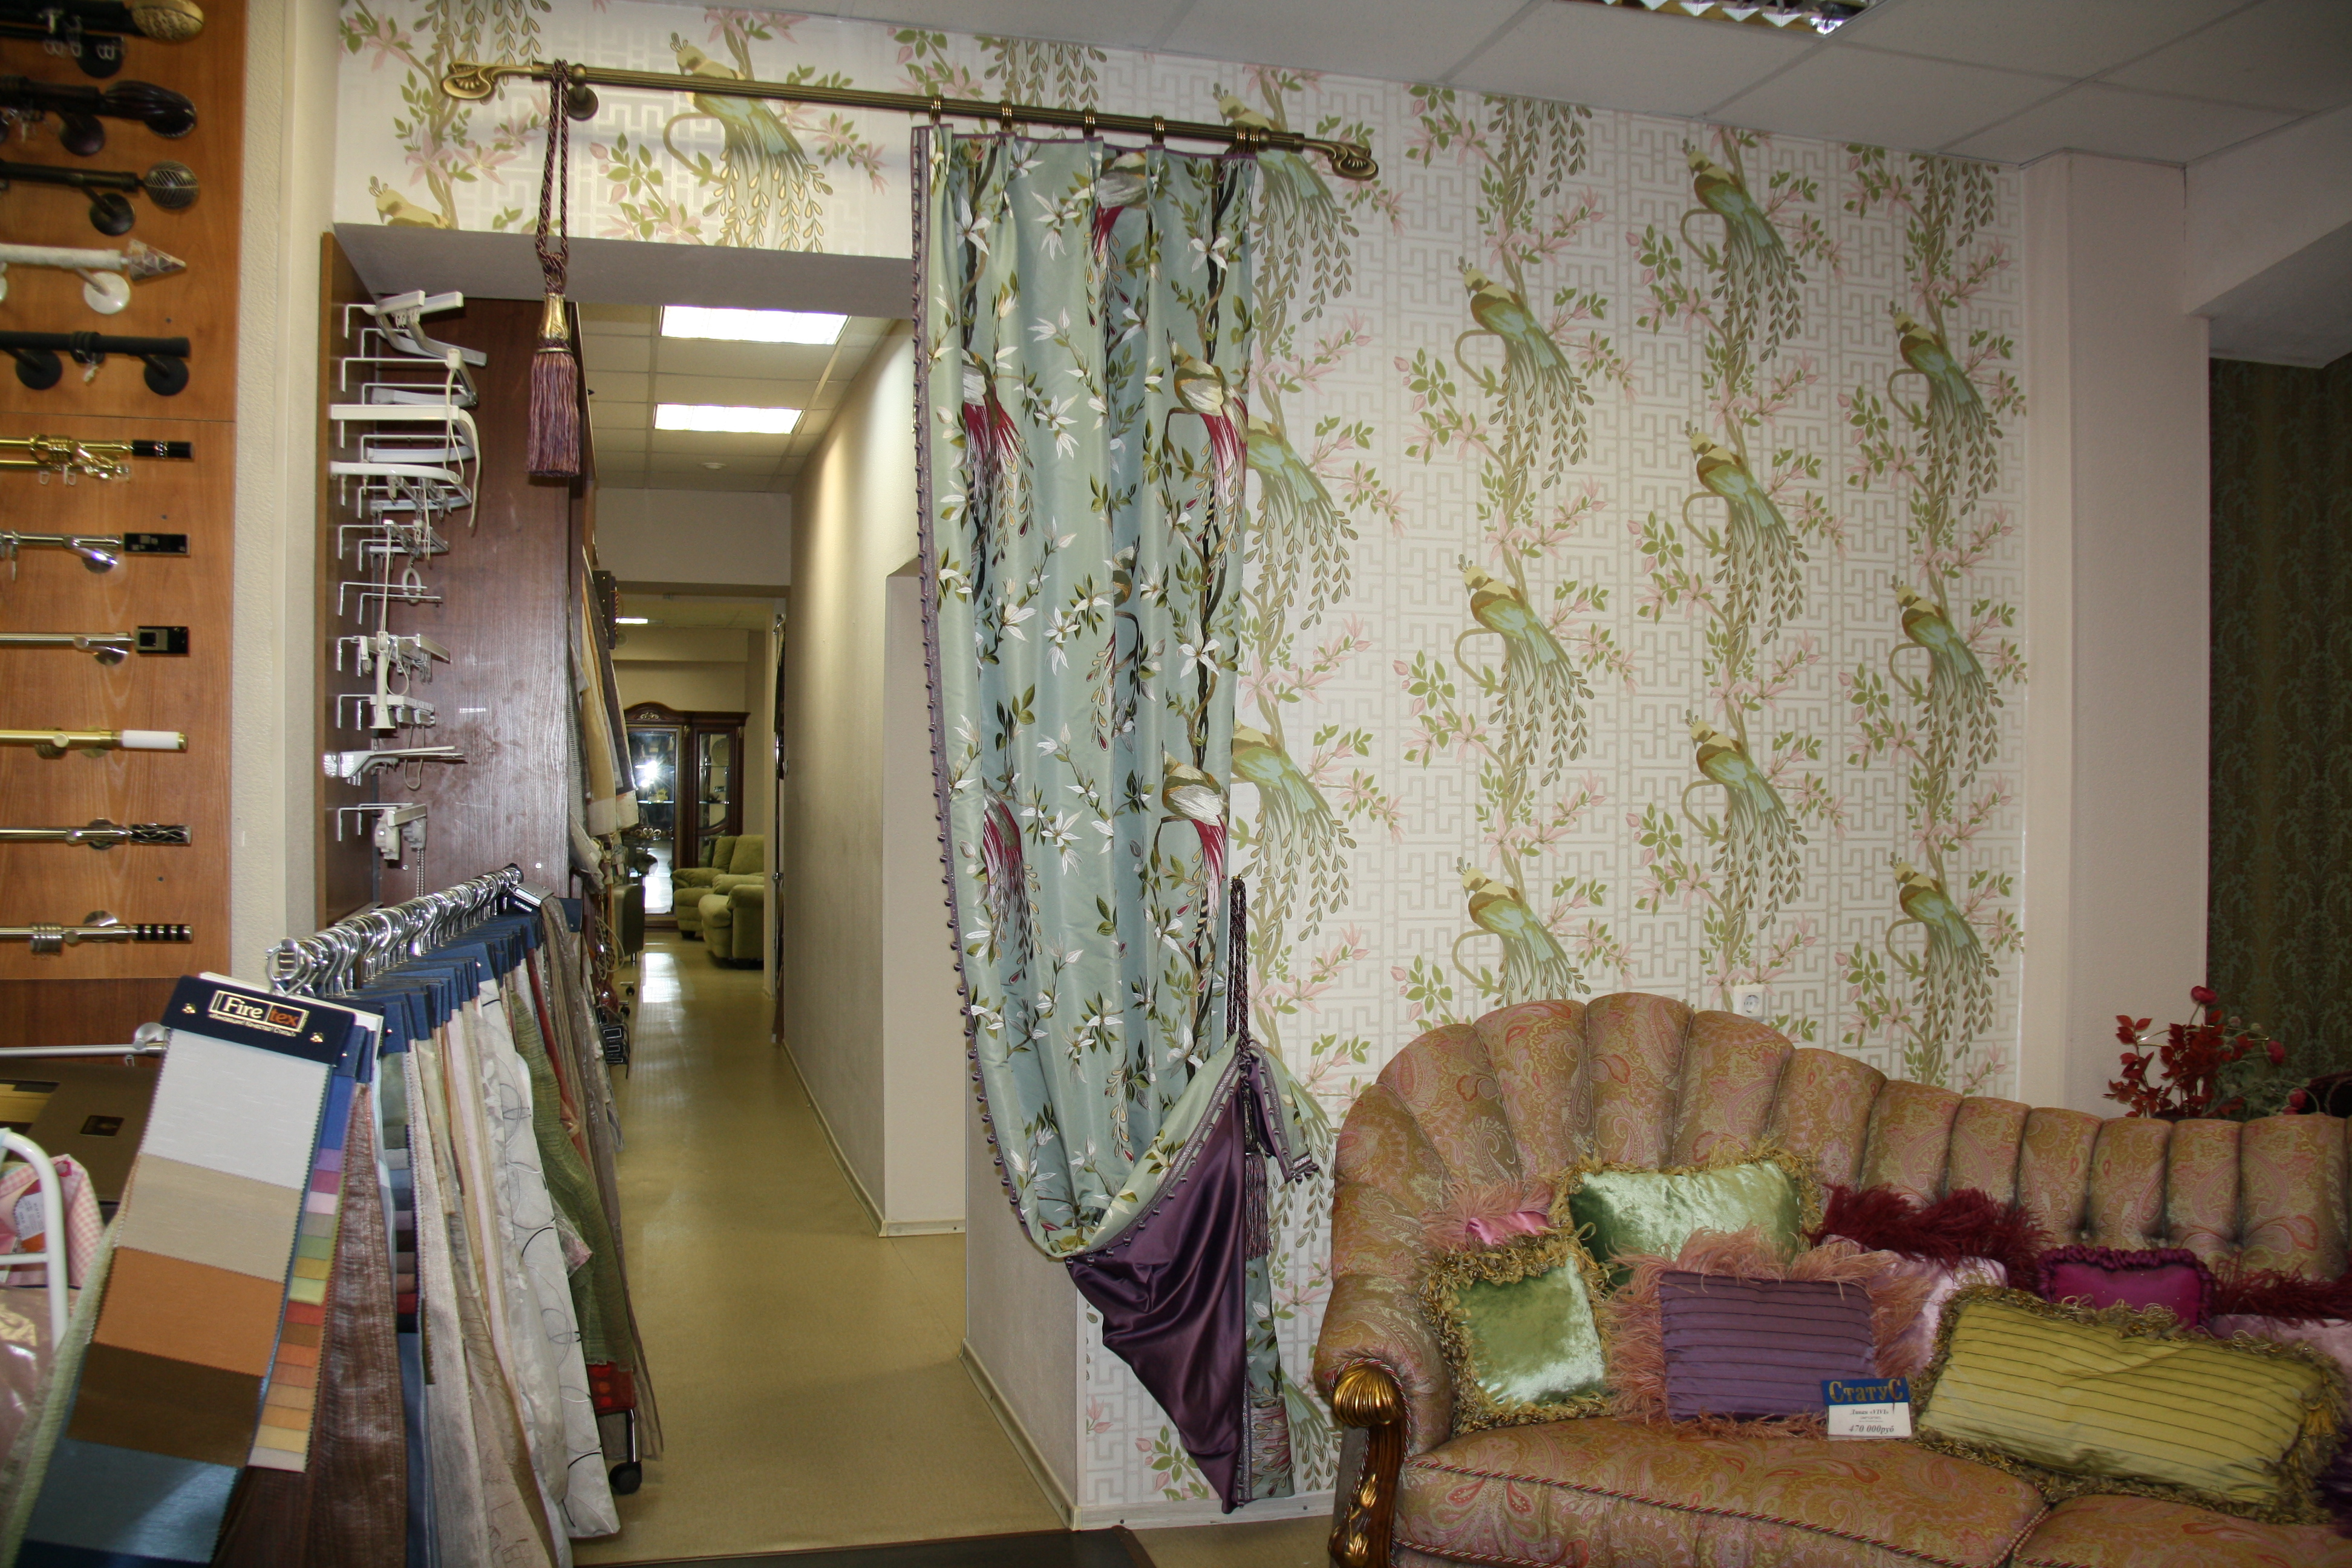 Pin by premier paint supplies on nina campbell wallpapers - Nina campbell paradiso wallpaper ...